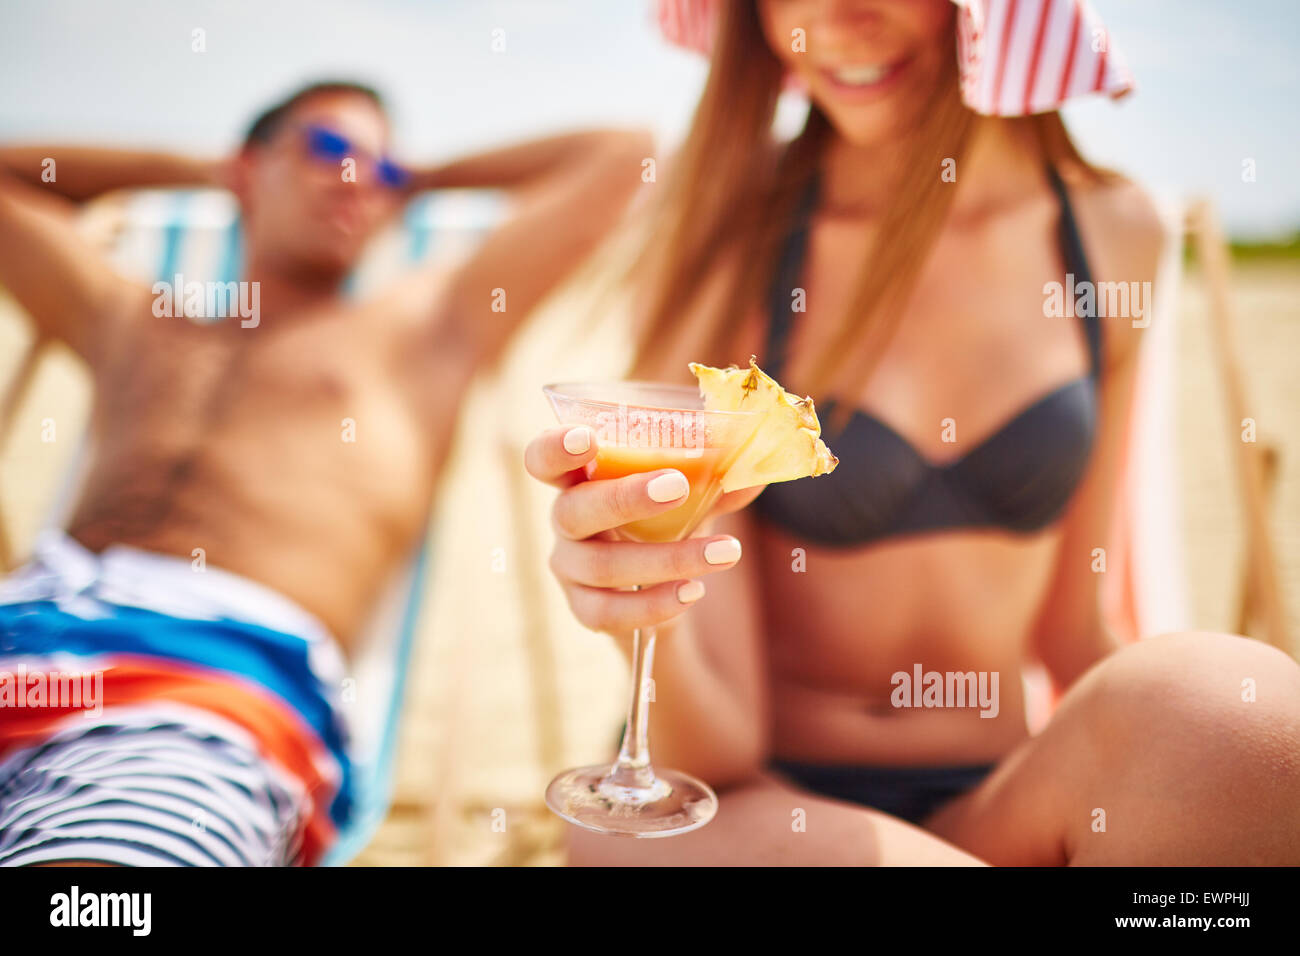 Glass of refreshing tropical cocktail held by young girl in bikini - Stock Image